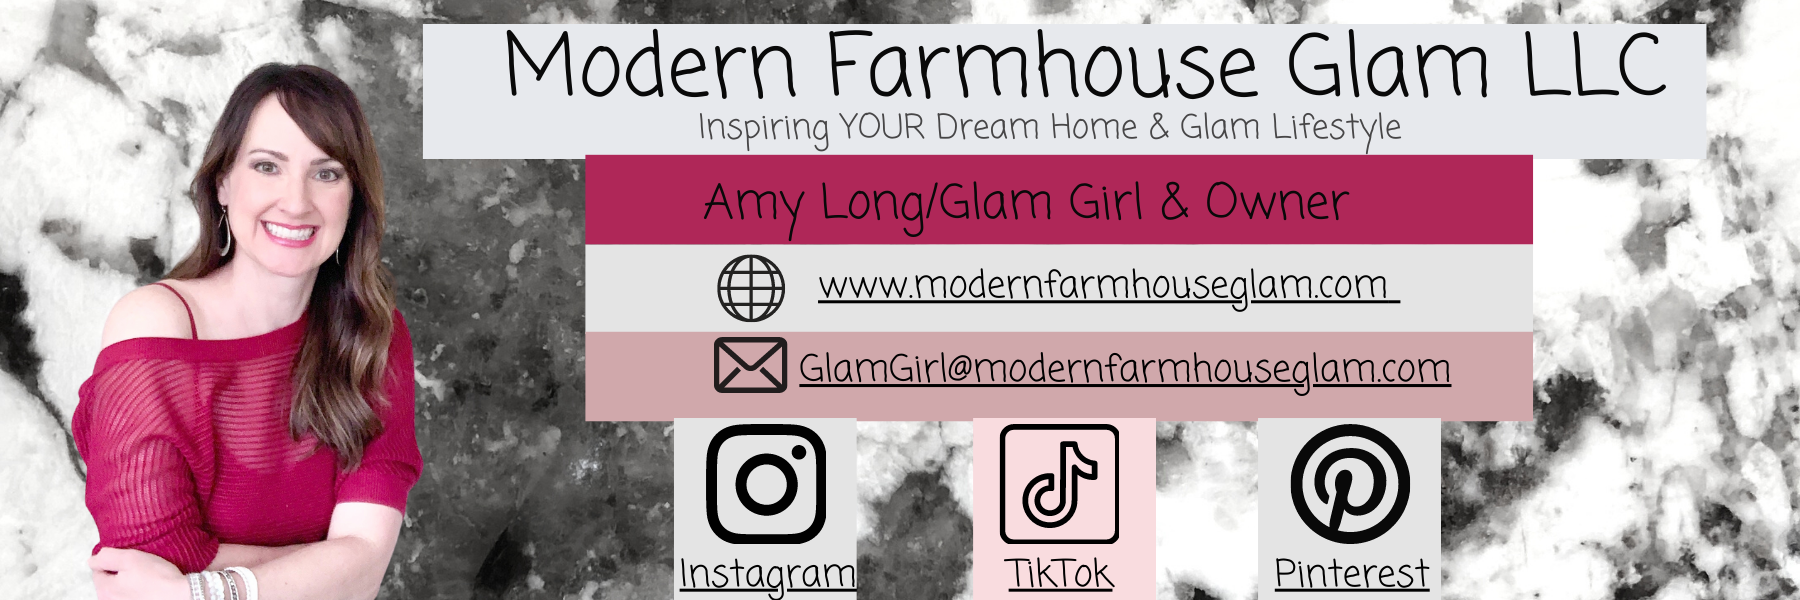 Modern Farmhouse Glam, hot decor, interior styling, decorating tips, family room furniture, influencer